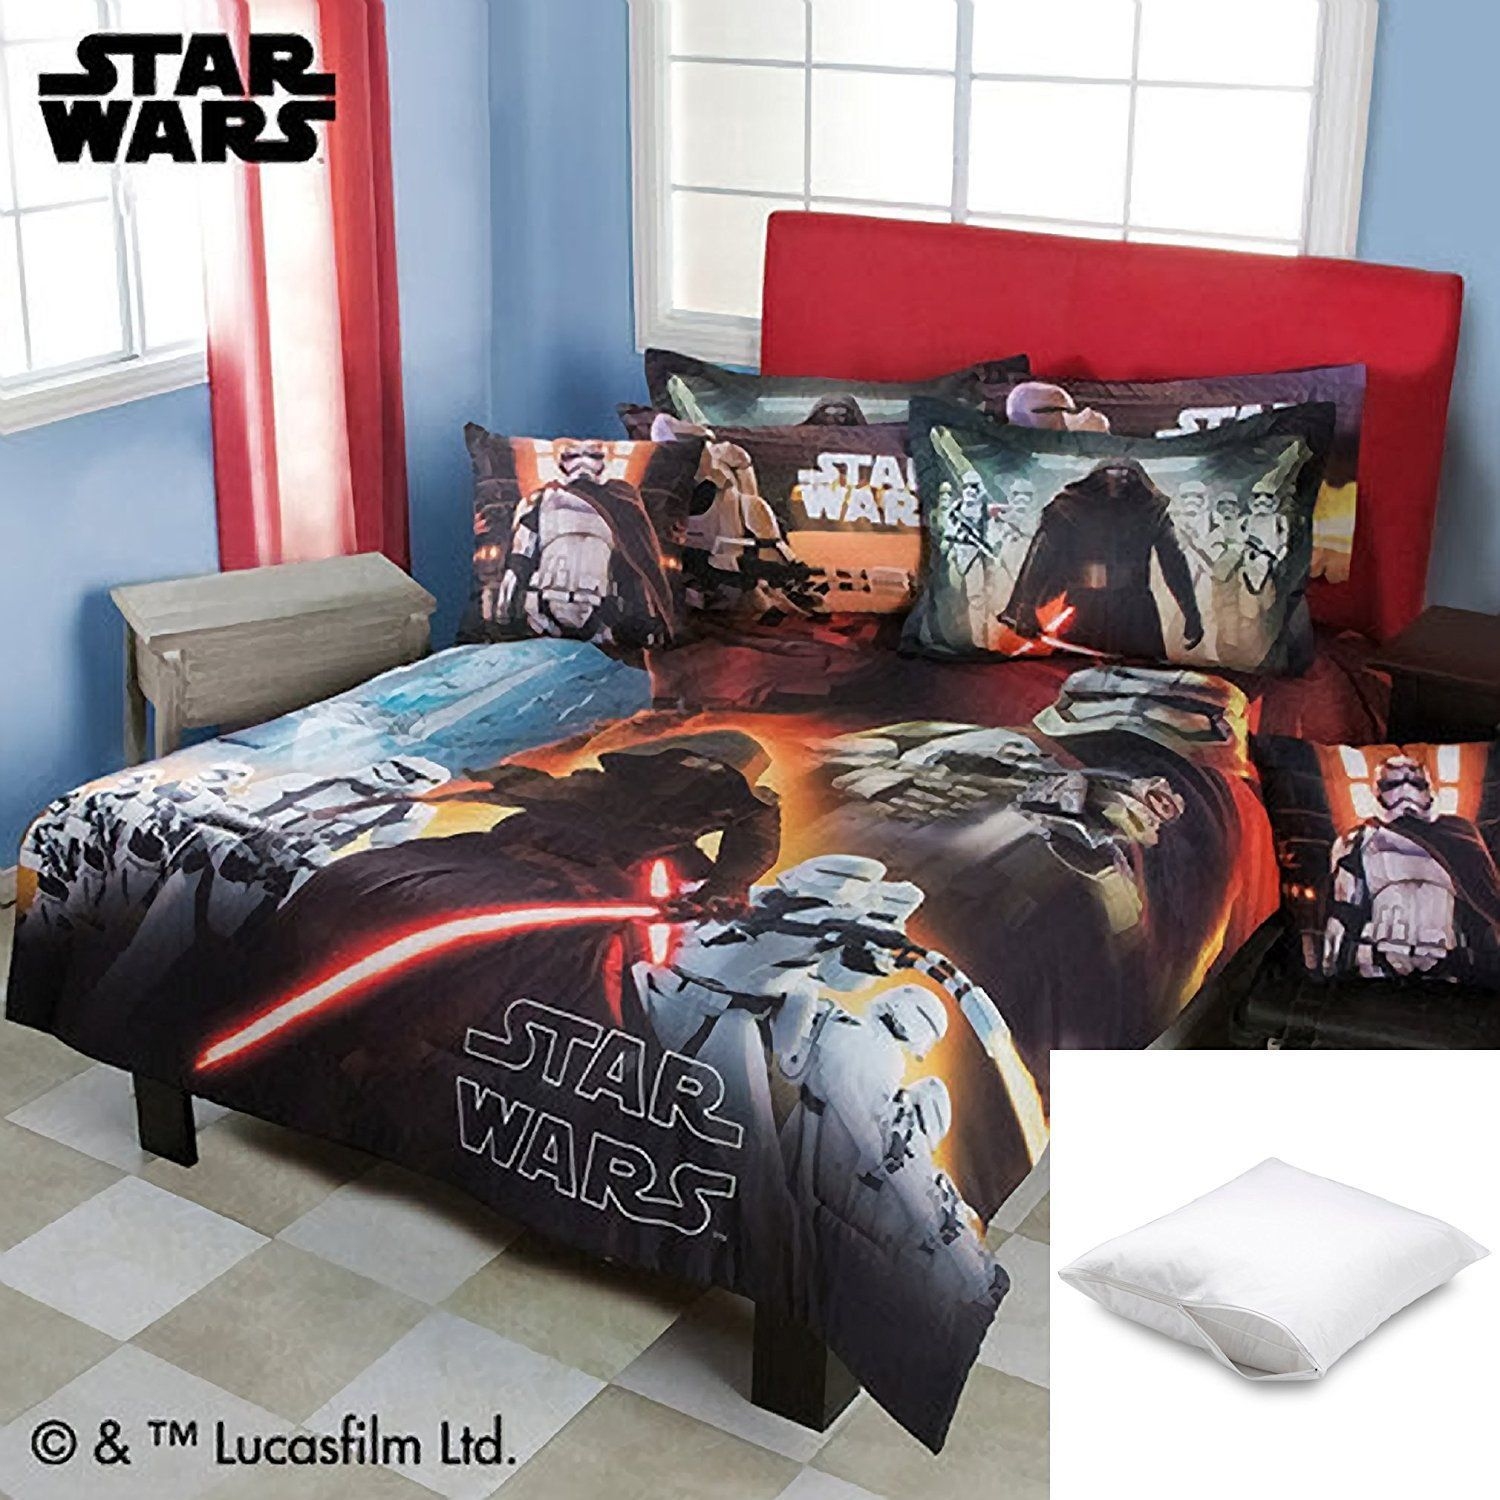 wars lostcoastshuttle star twin create full comforter bedding set image of a